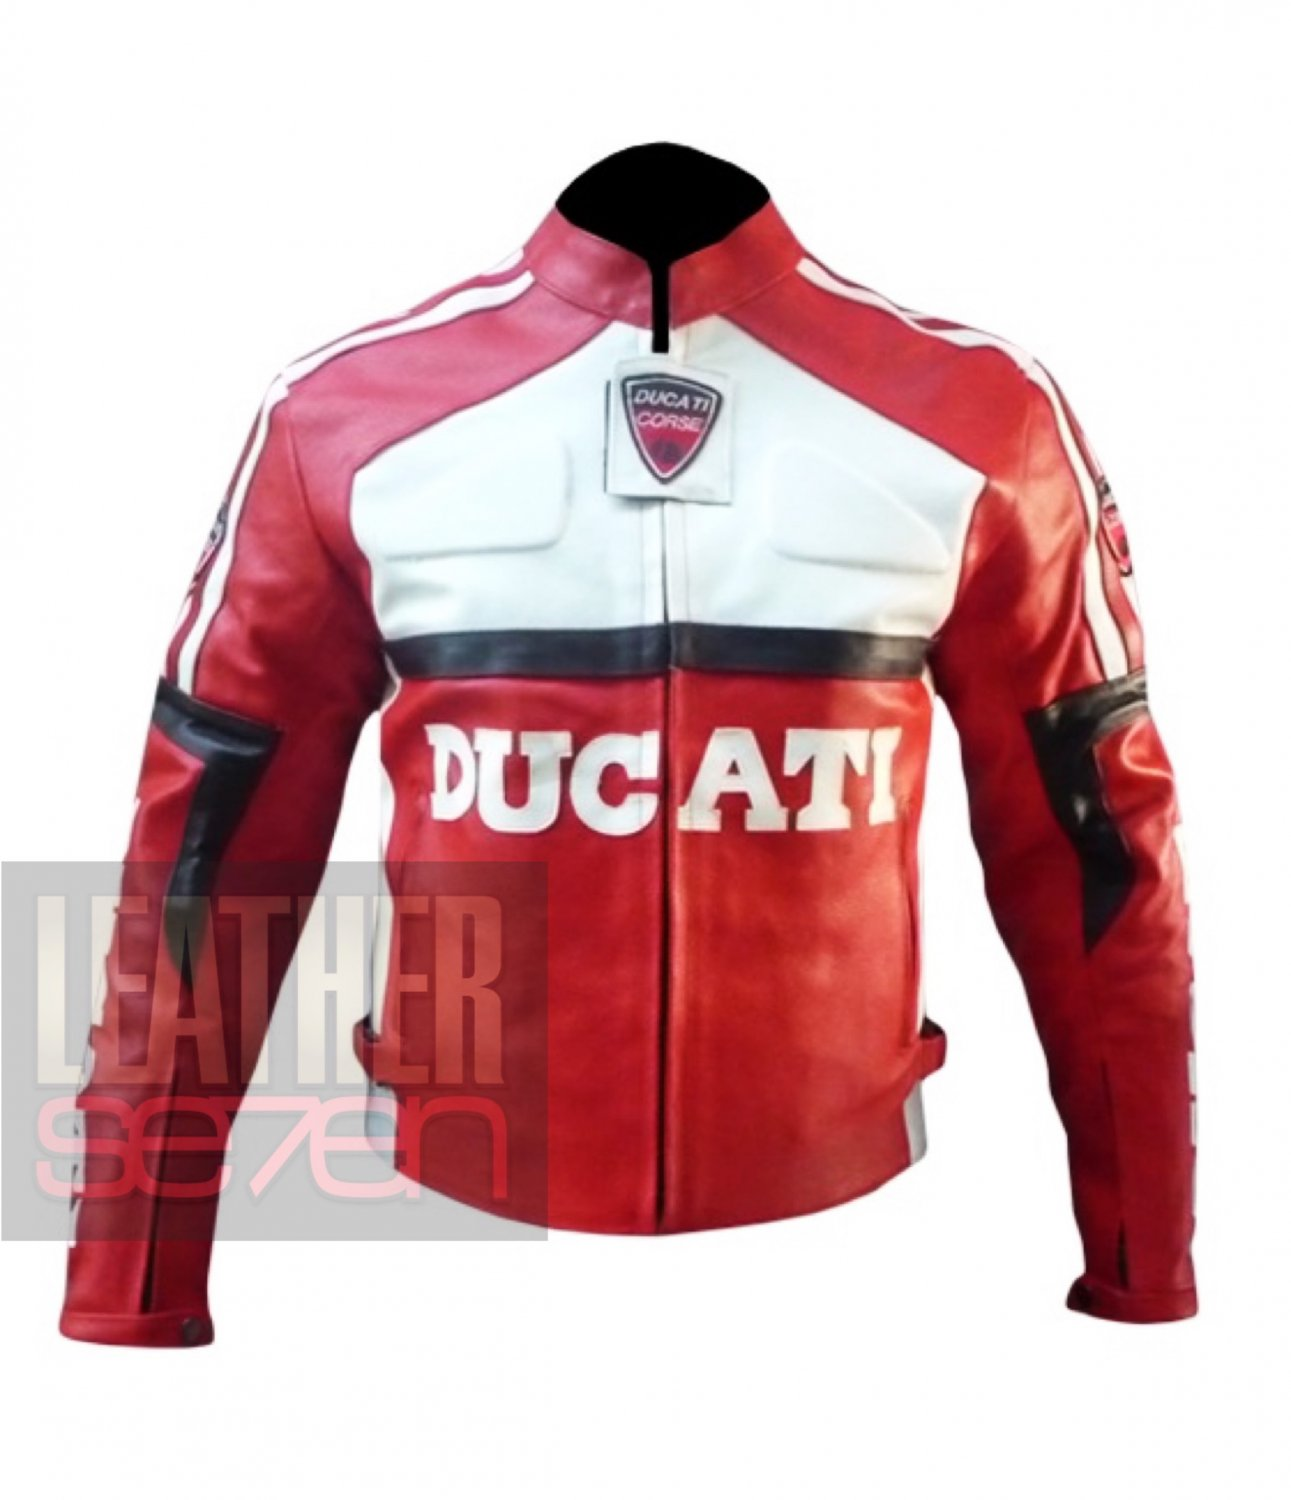 Ducati 3039 Red Outclass Cowhide Leather Motorbike Safety Jacket For Bikers